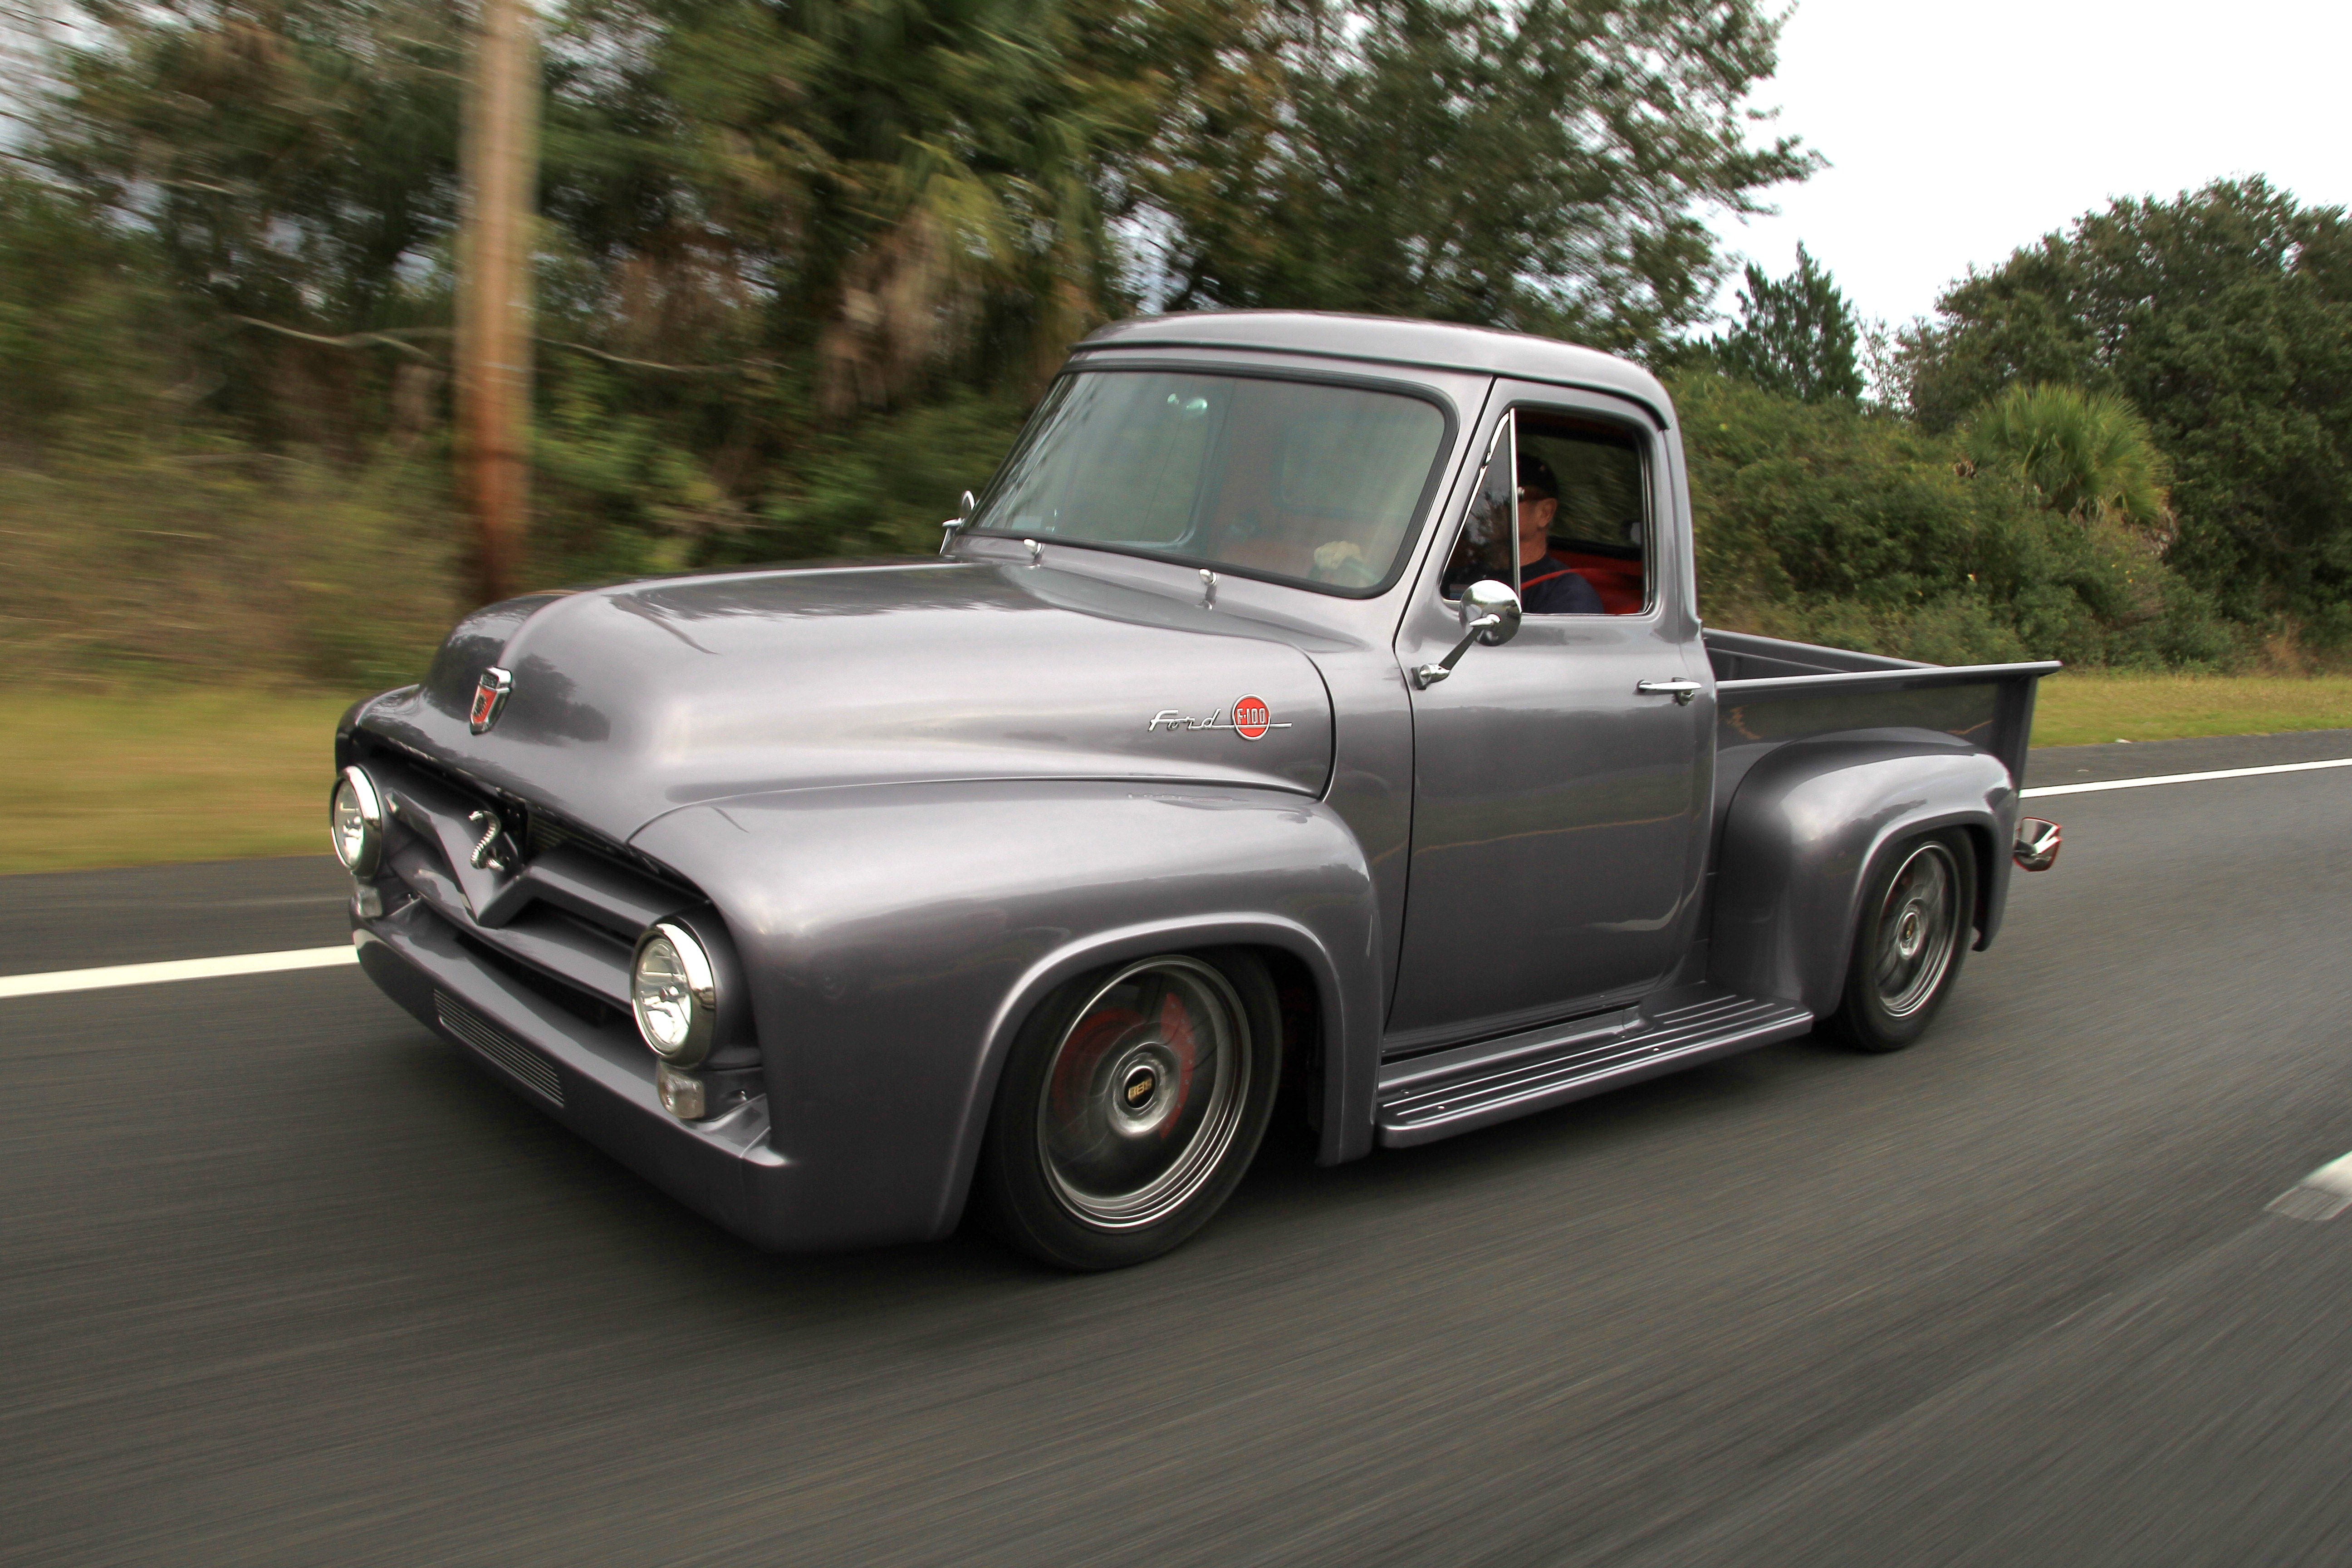 This F 100 Is World Class Fast Racingjunk News 1955 Ford F100 Show Trucks The Details